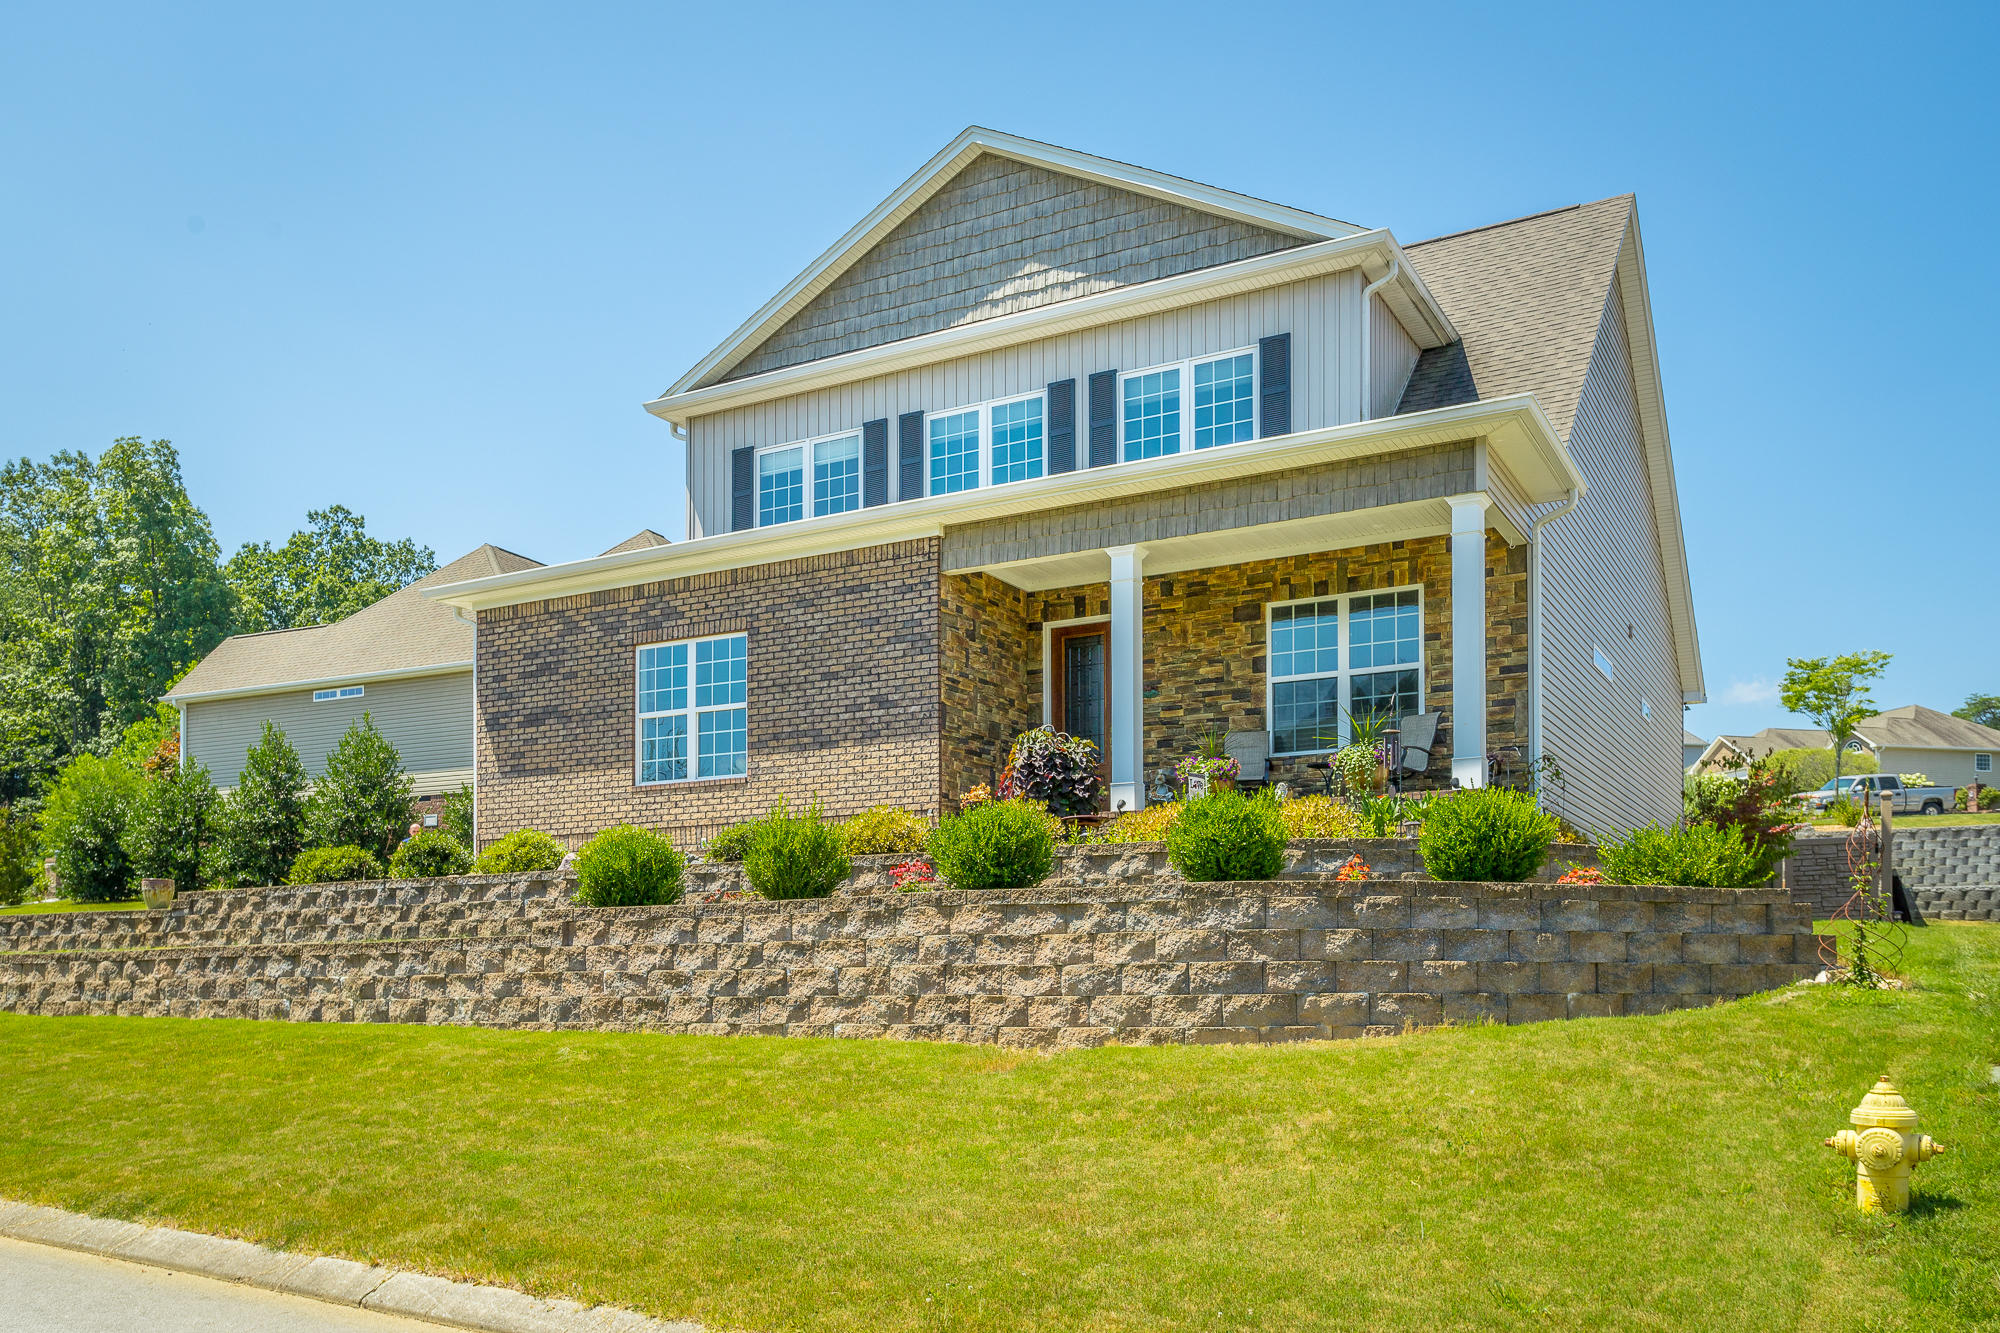 608 Sunset Valley Dr, Soddy Daisy, TN 37379